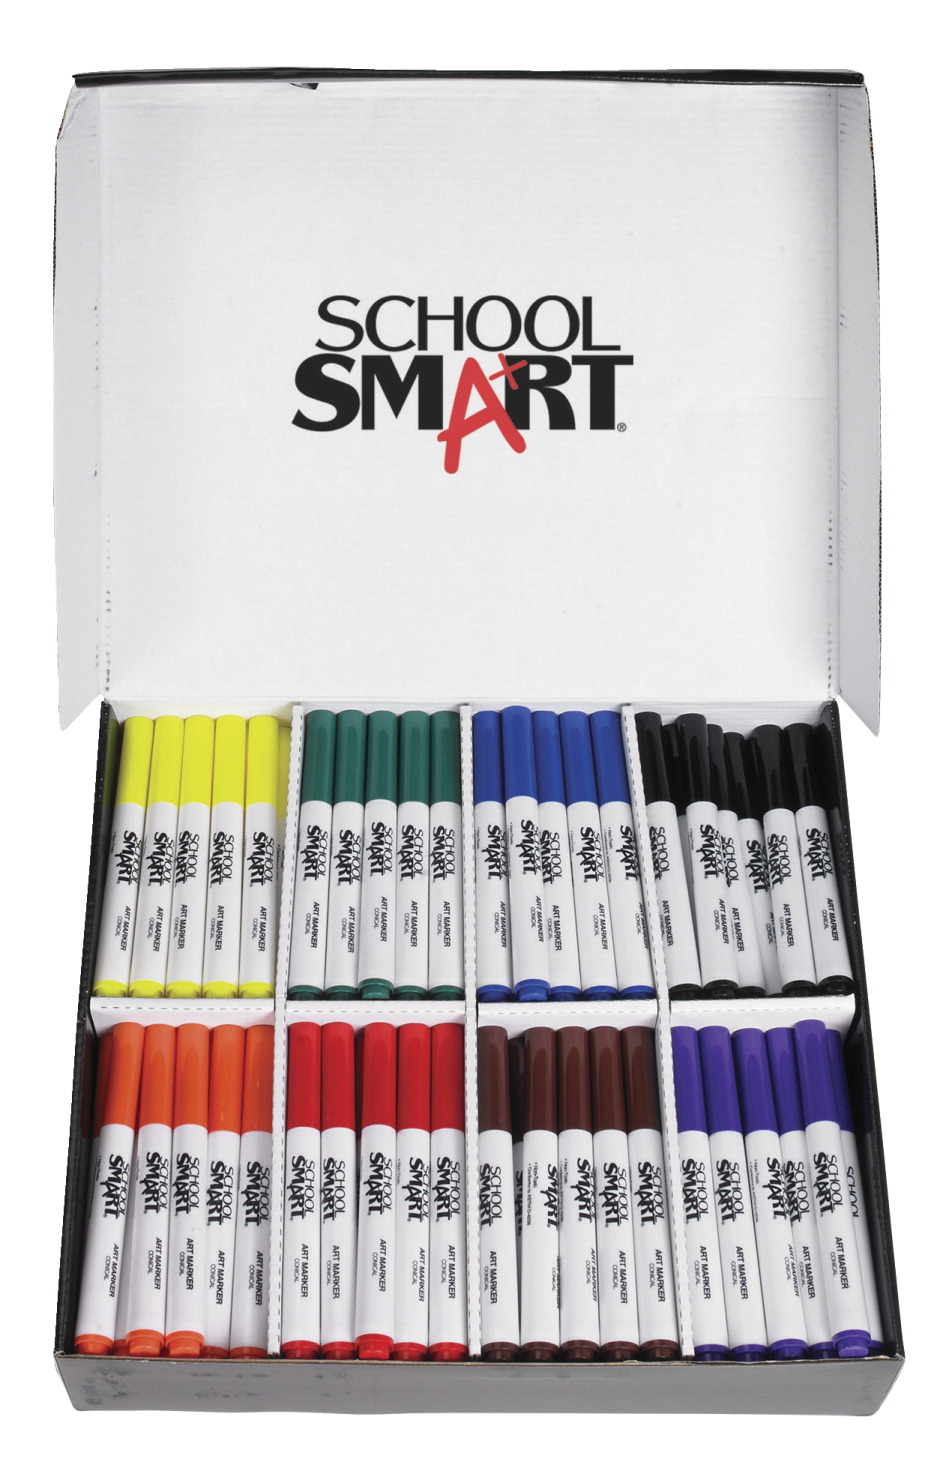 School Smart Art Marker, Conical Tip, Assorted Colors, Pack of 200